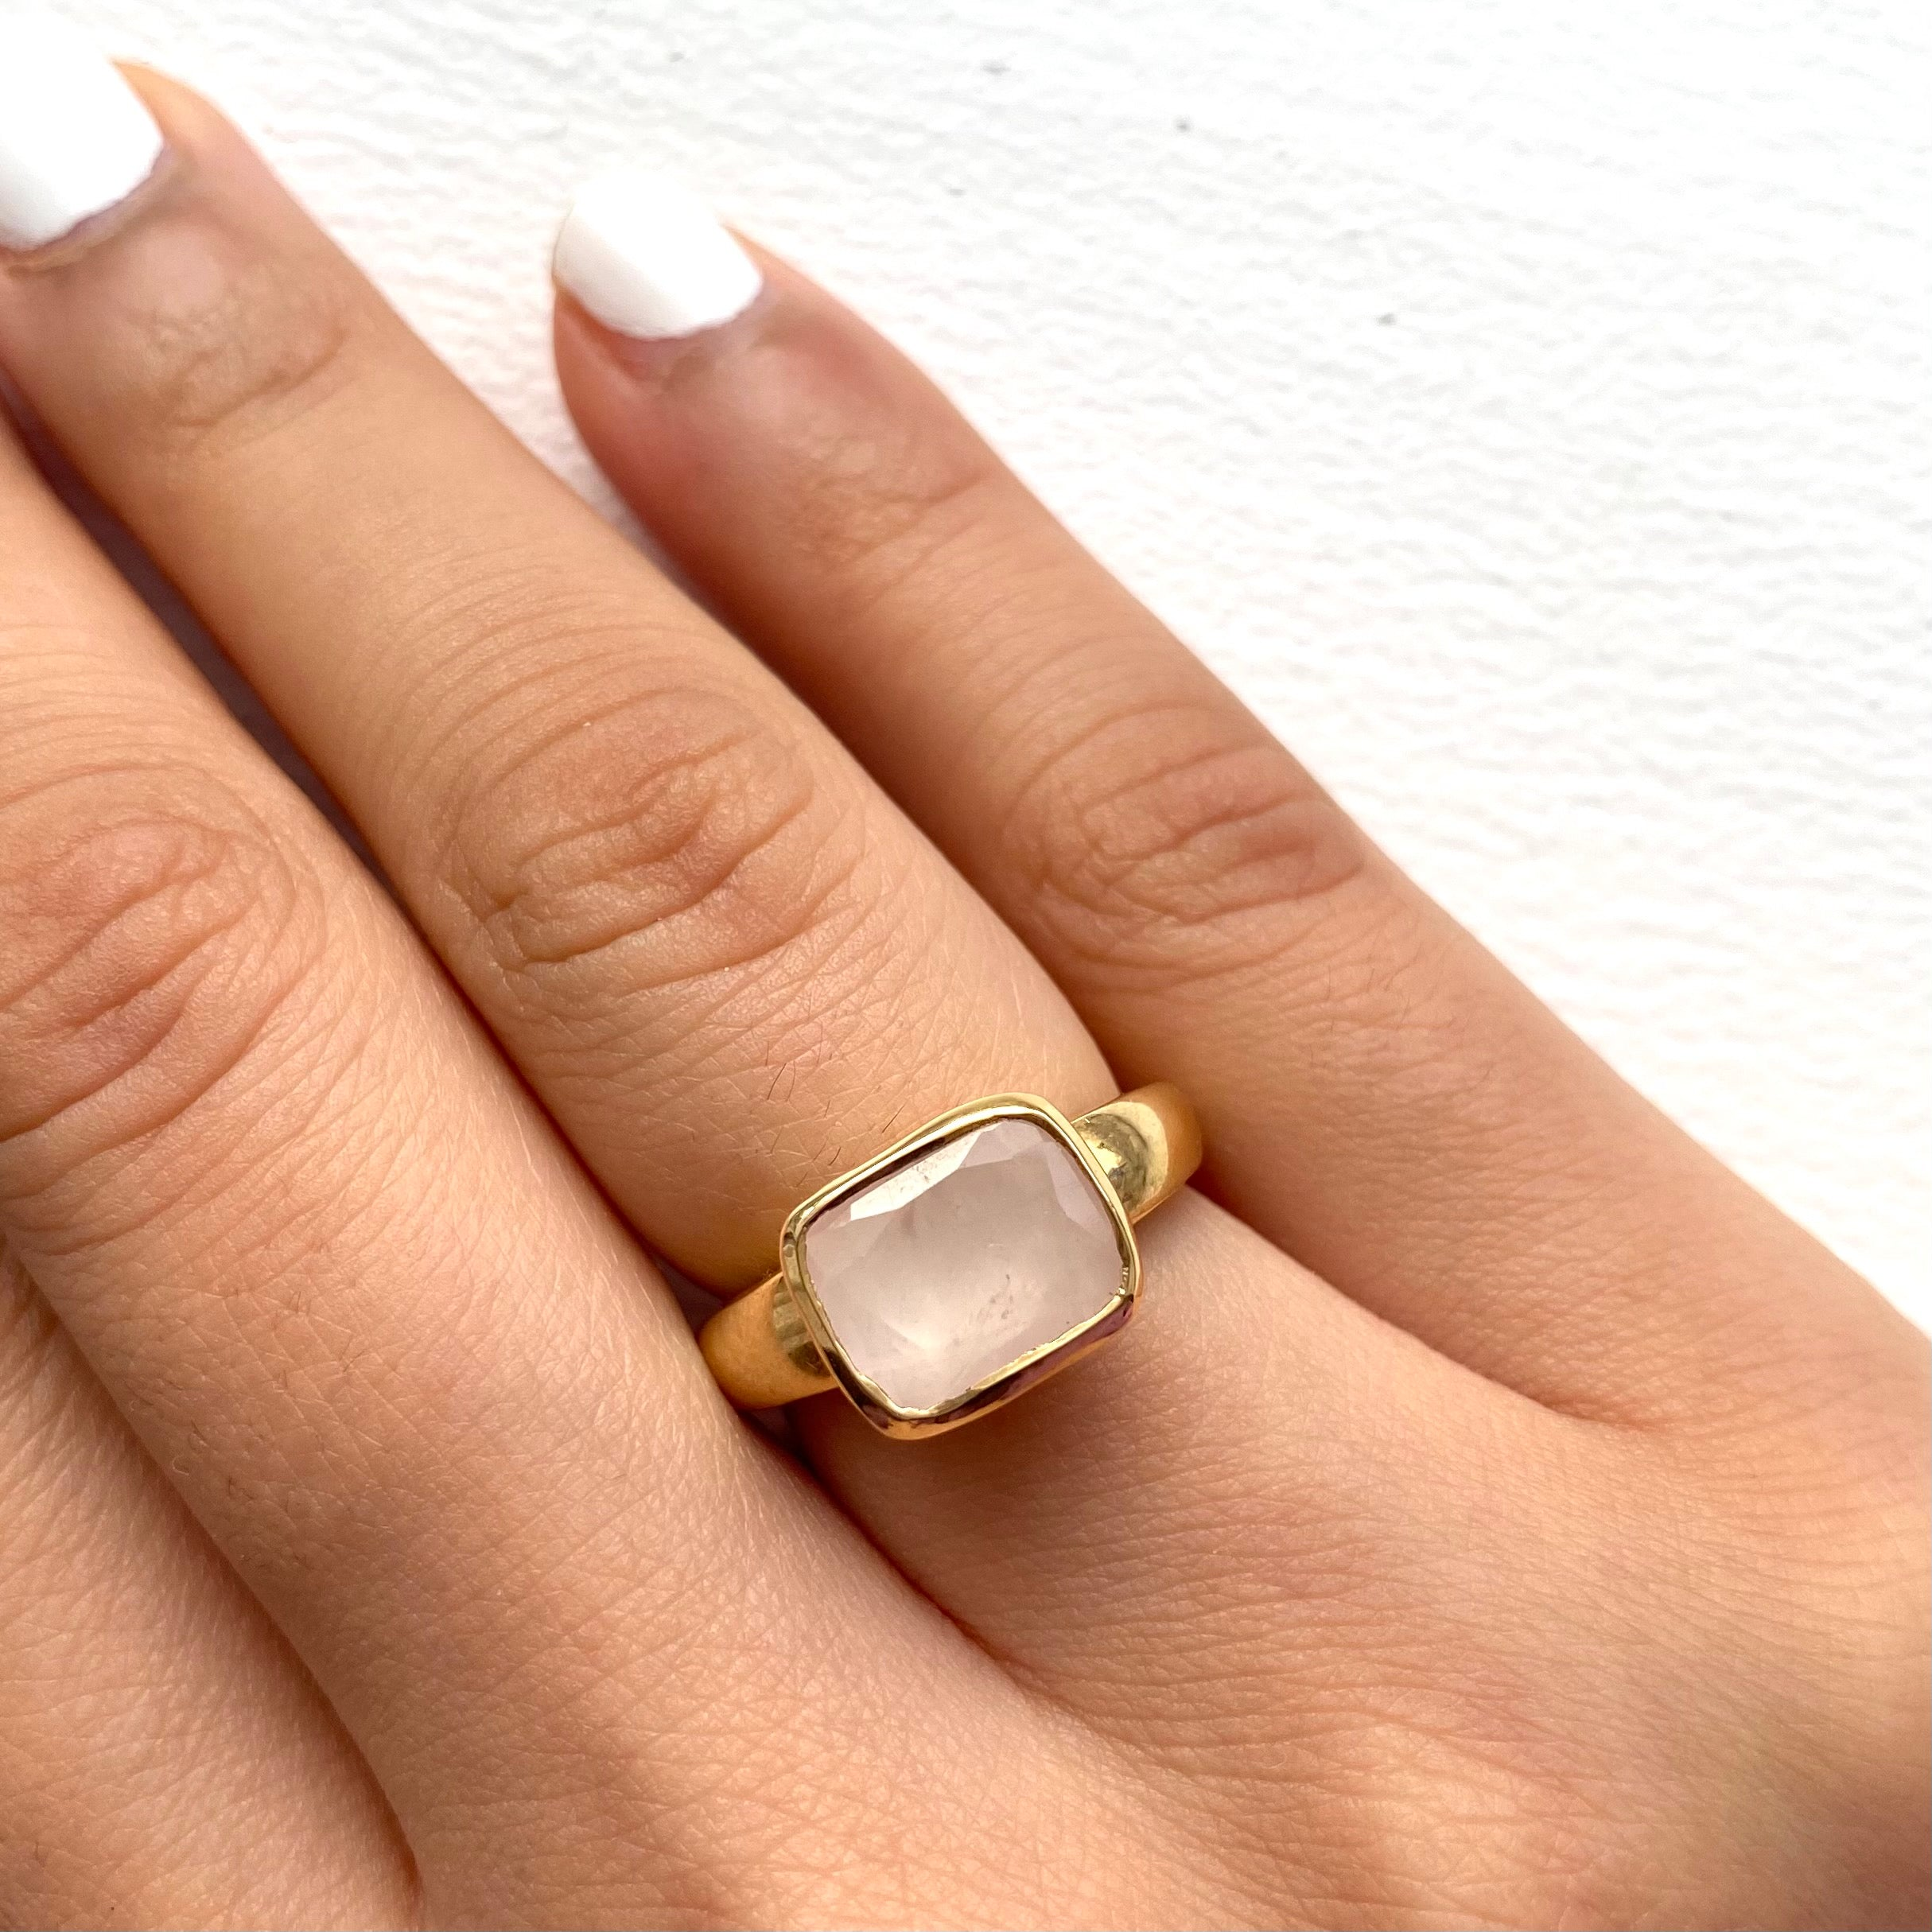 Faceted Rectangular Cut Natural Gemstone Gold Plated Sterling Silver Ring - Rose Quartz